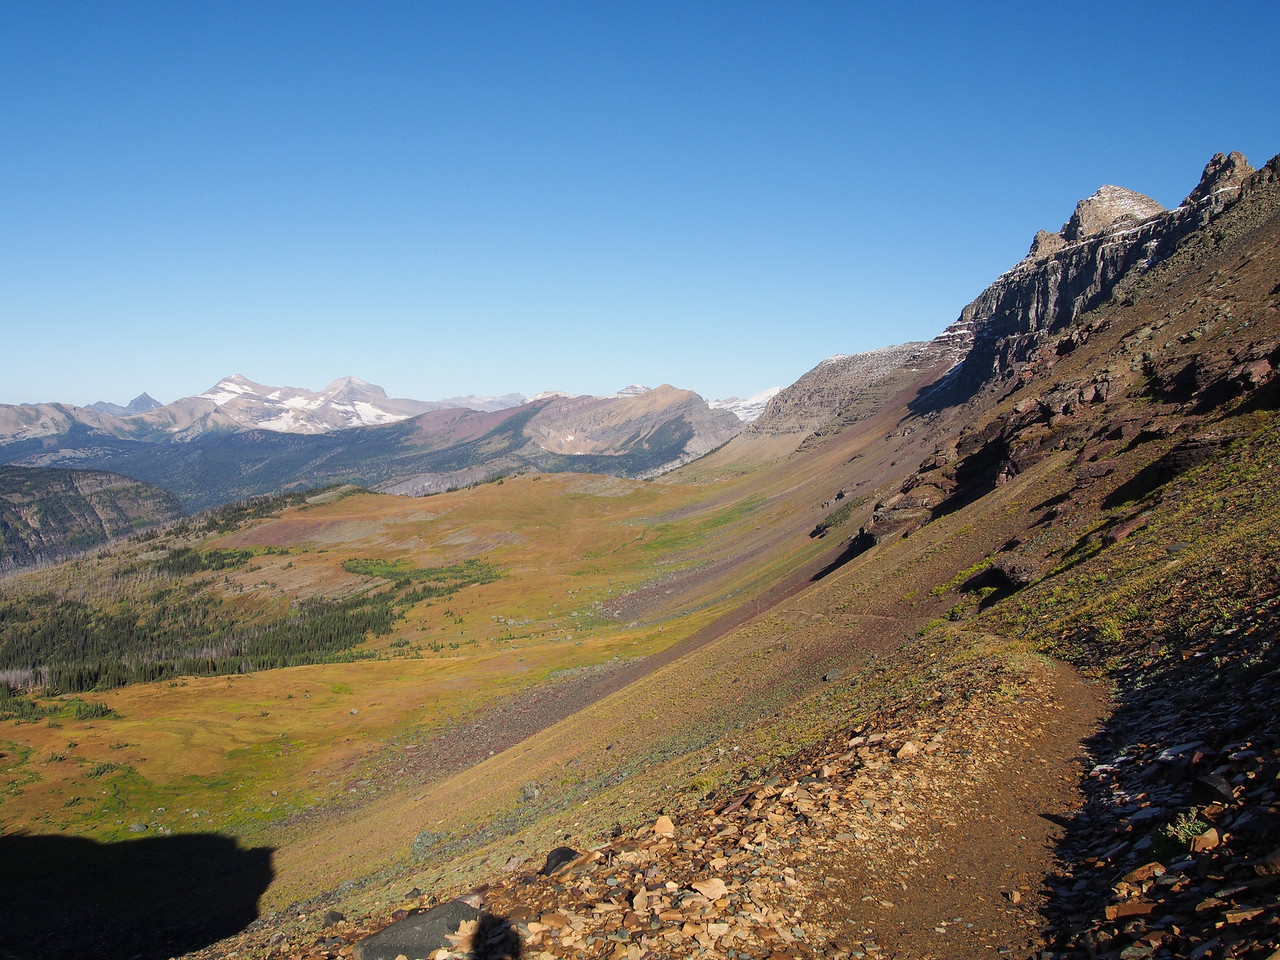 Day 4/5 - Early morning hike on Highline trail from Fifty Mountain, Glacier NP